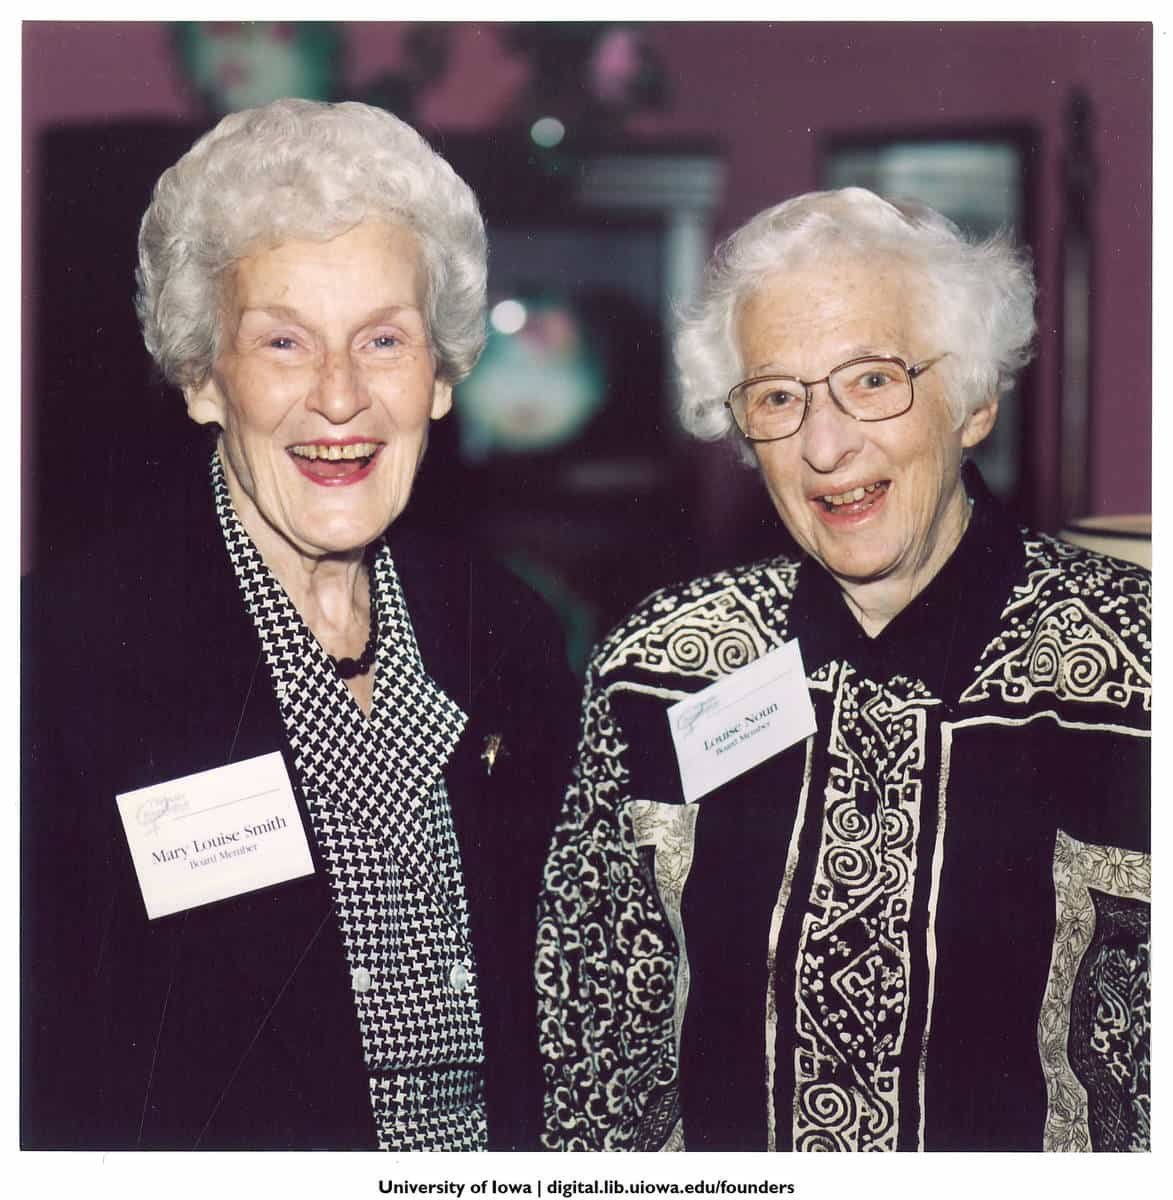 Mary Louise Smith and Louise Noun, Des Moines, Iowa, October 1, 1996. University of Iowa Libraries. Iowa Women's Archives.